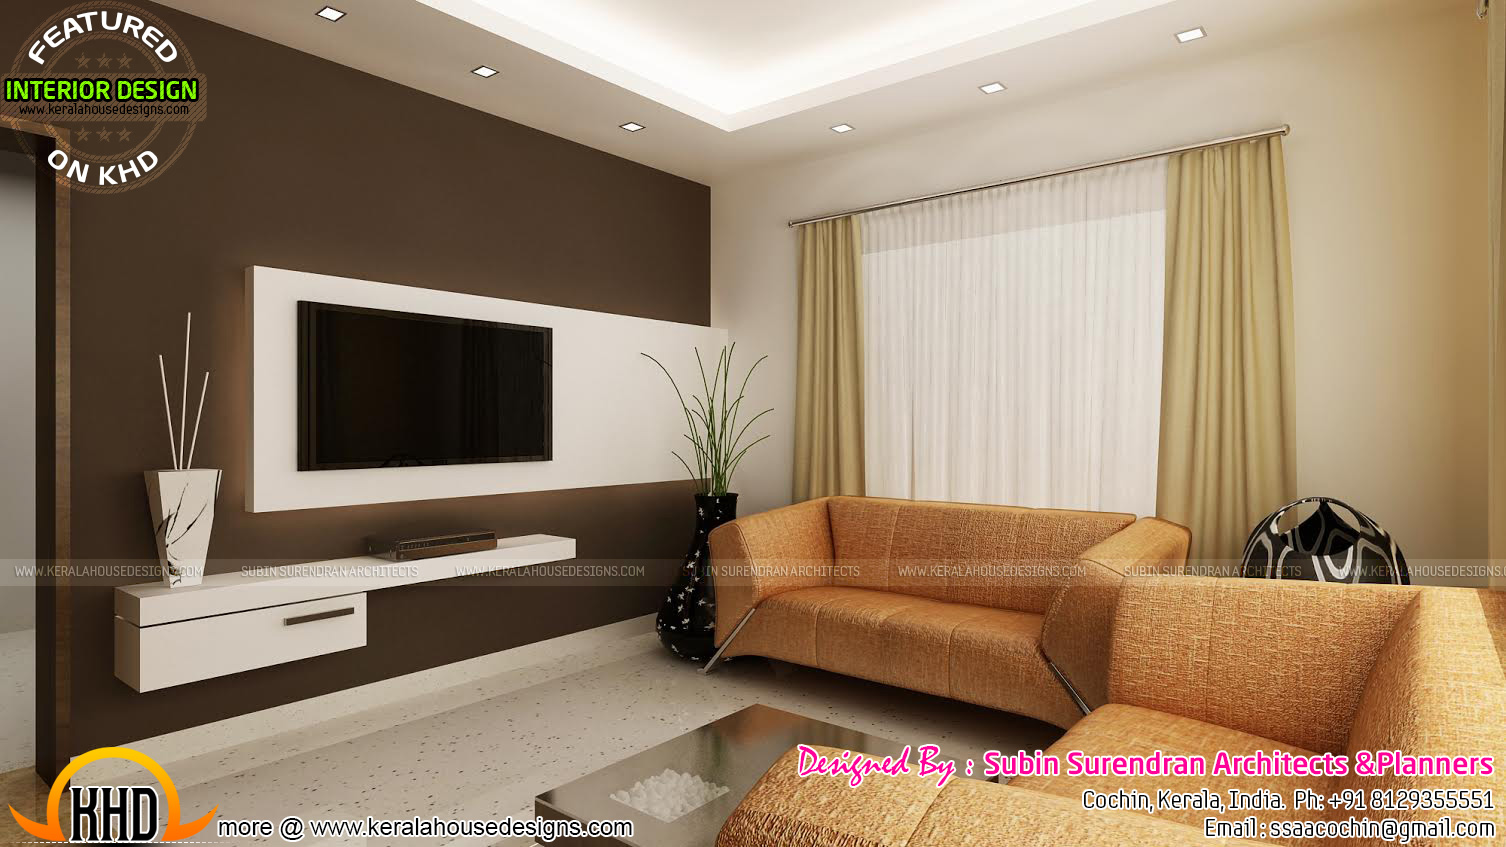 Living rooms modern kitchen interiors in kerala kerala for Interior designs idea